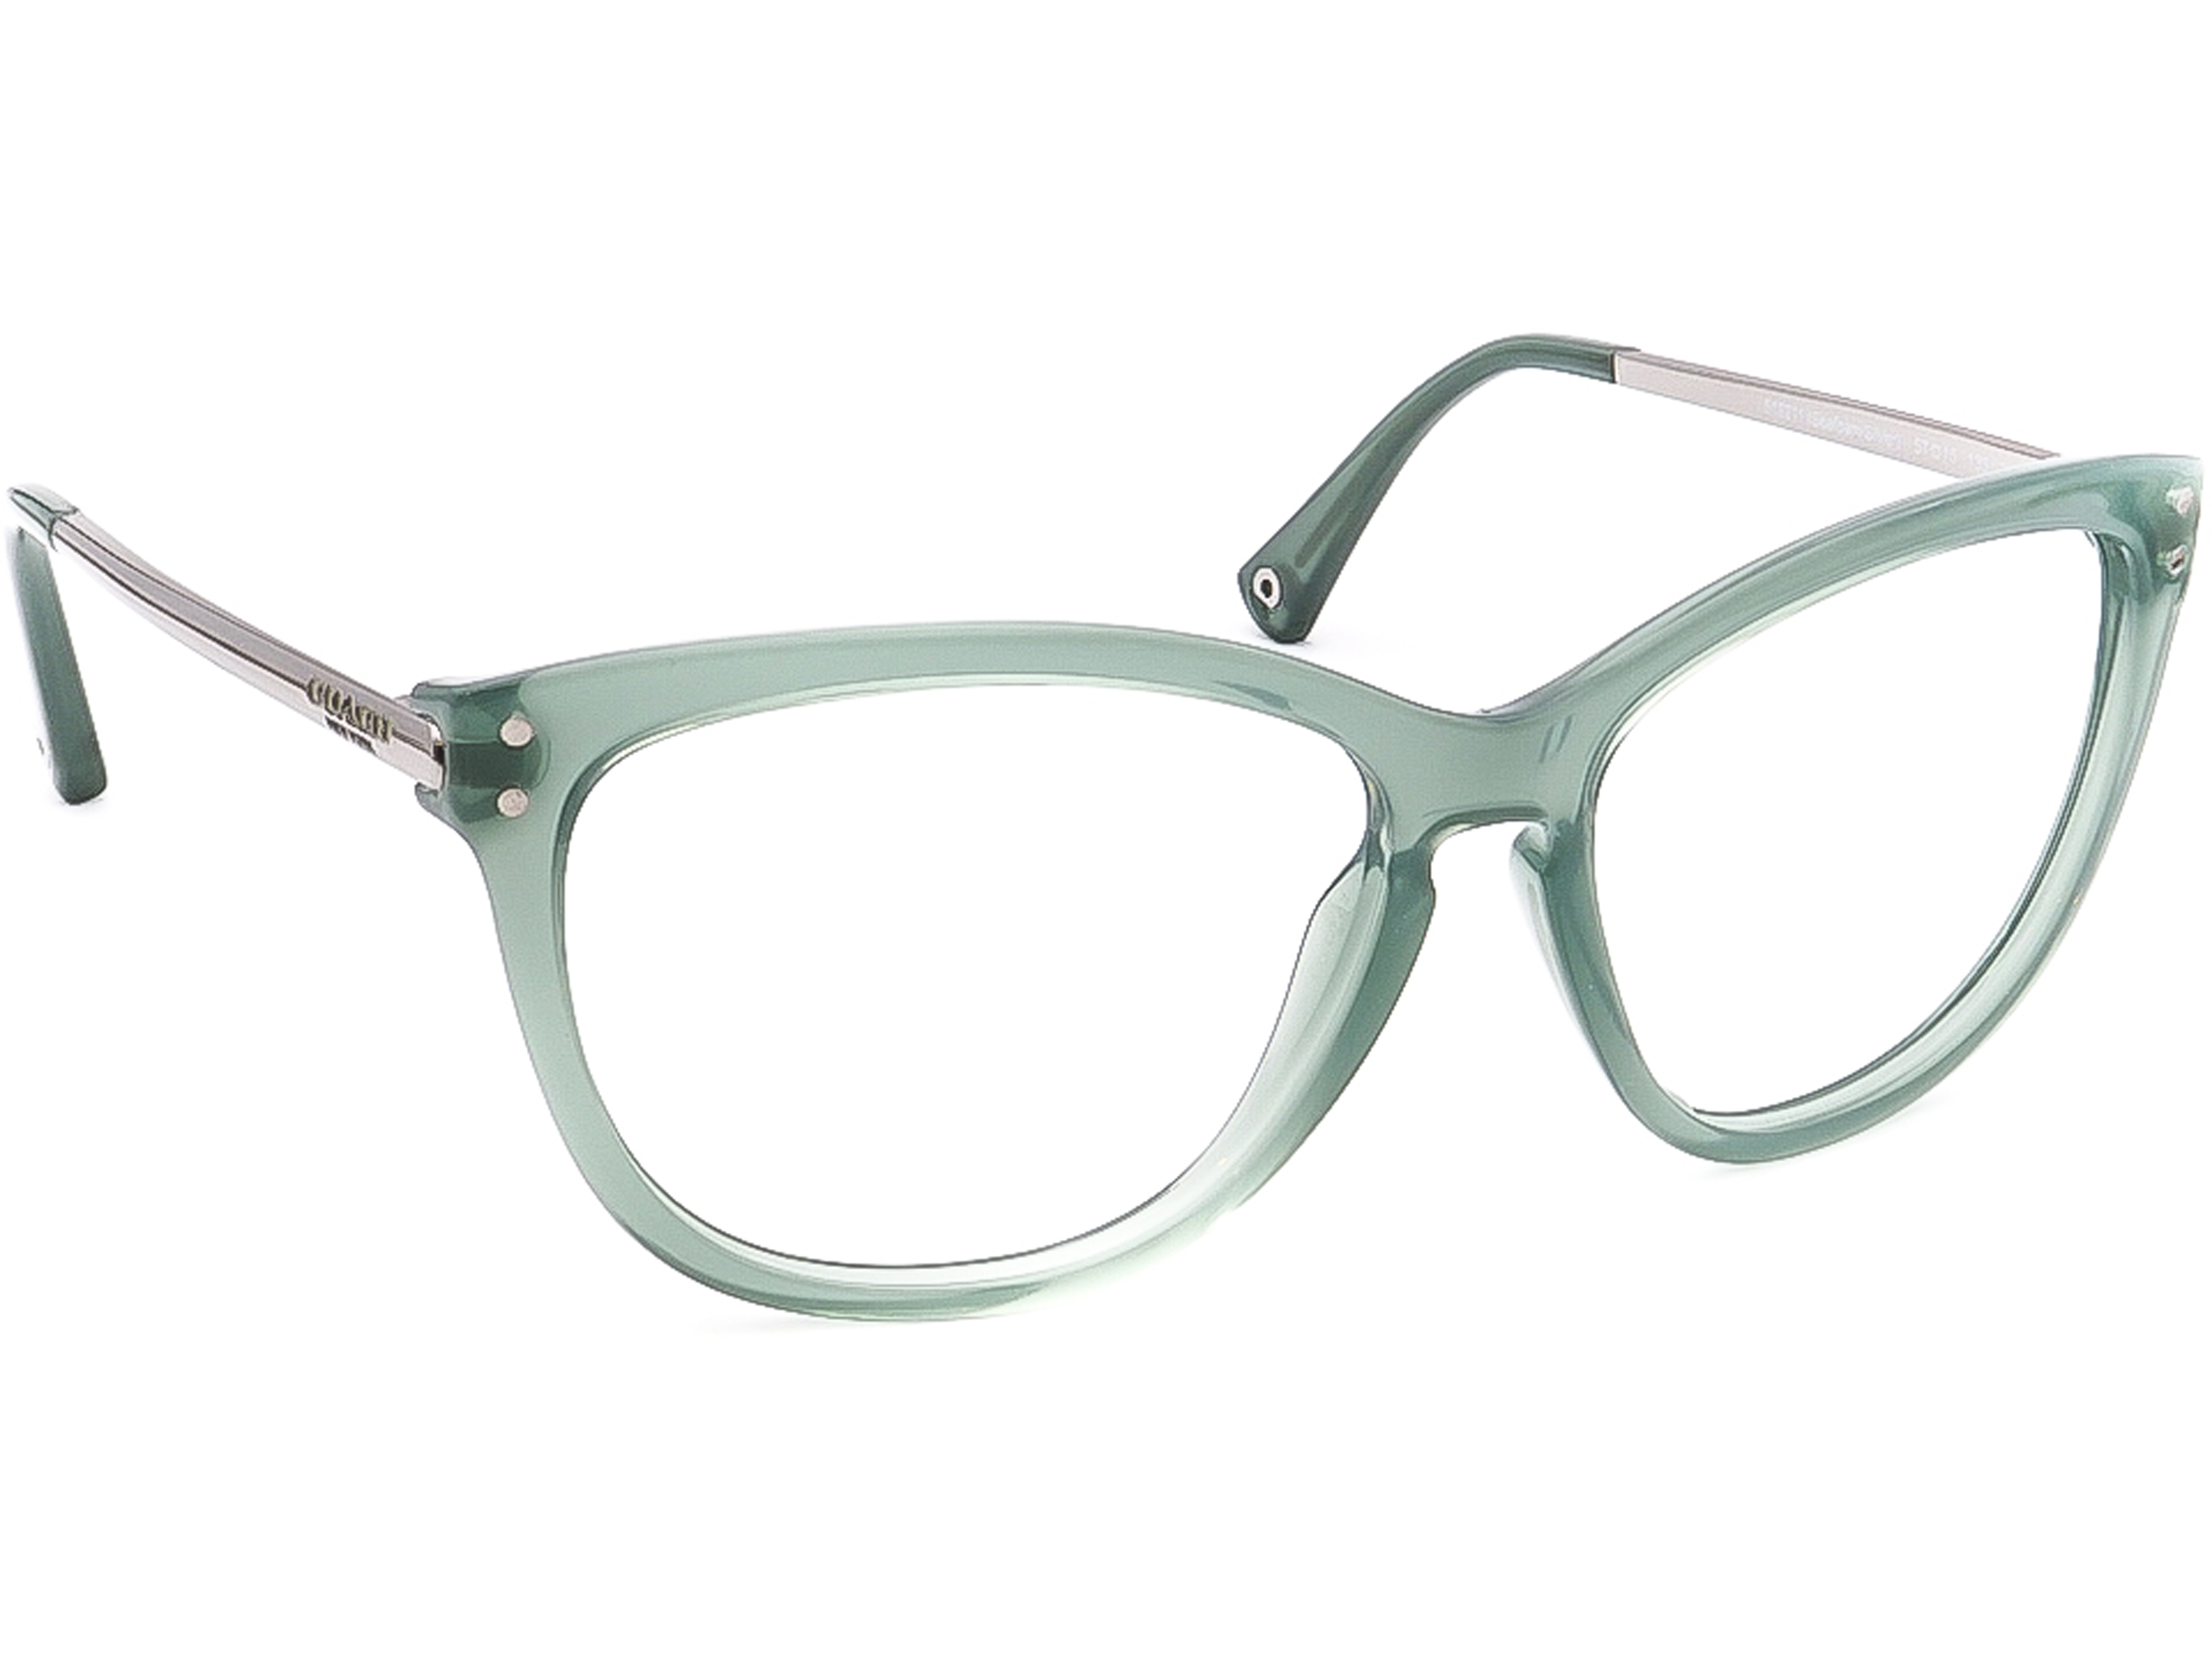 Coach HC 8084 L072 Celia 518211 Seaform/Silver Sunglasses Frame Only